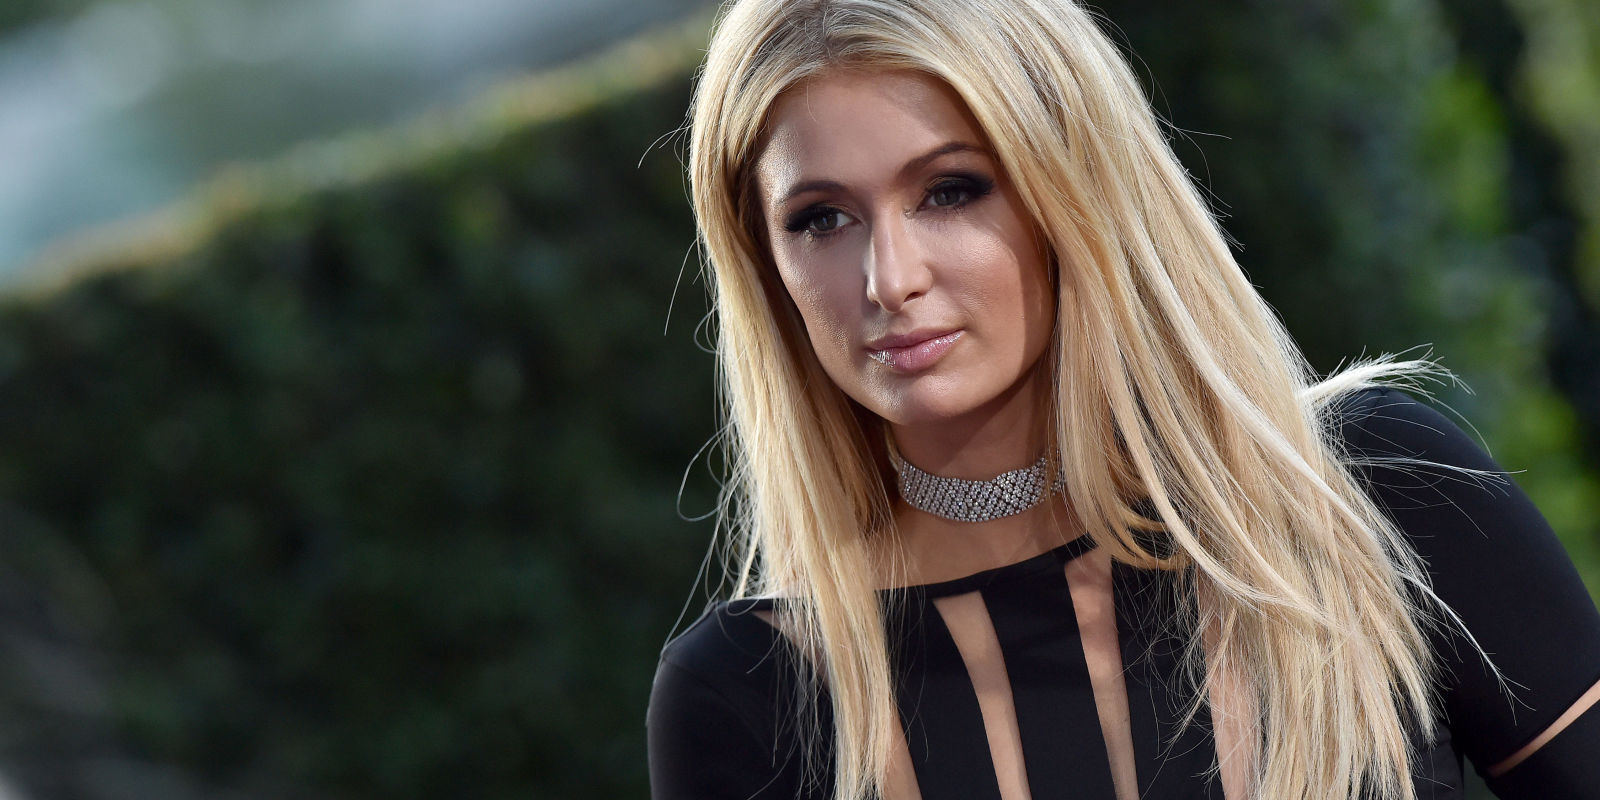 Paris Hilton Has Apologised For Those Terrible Comments ... Paris Hilton